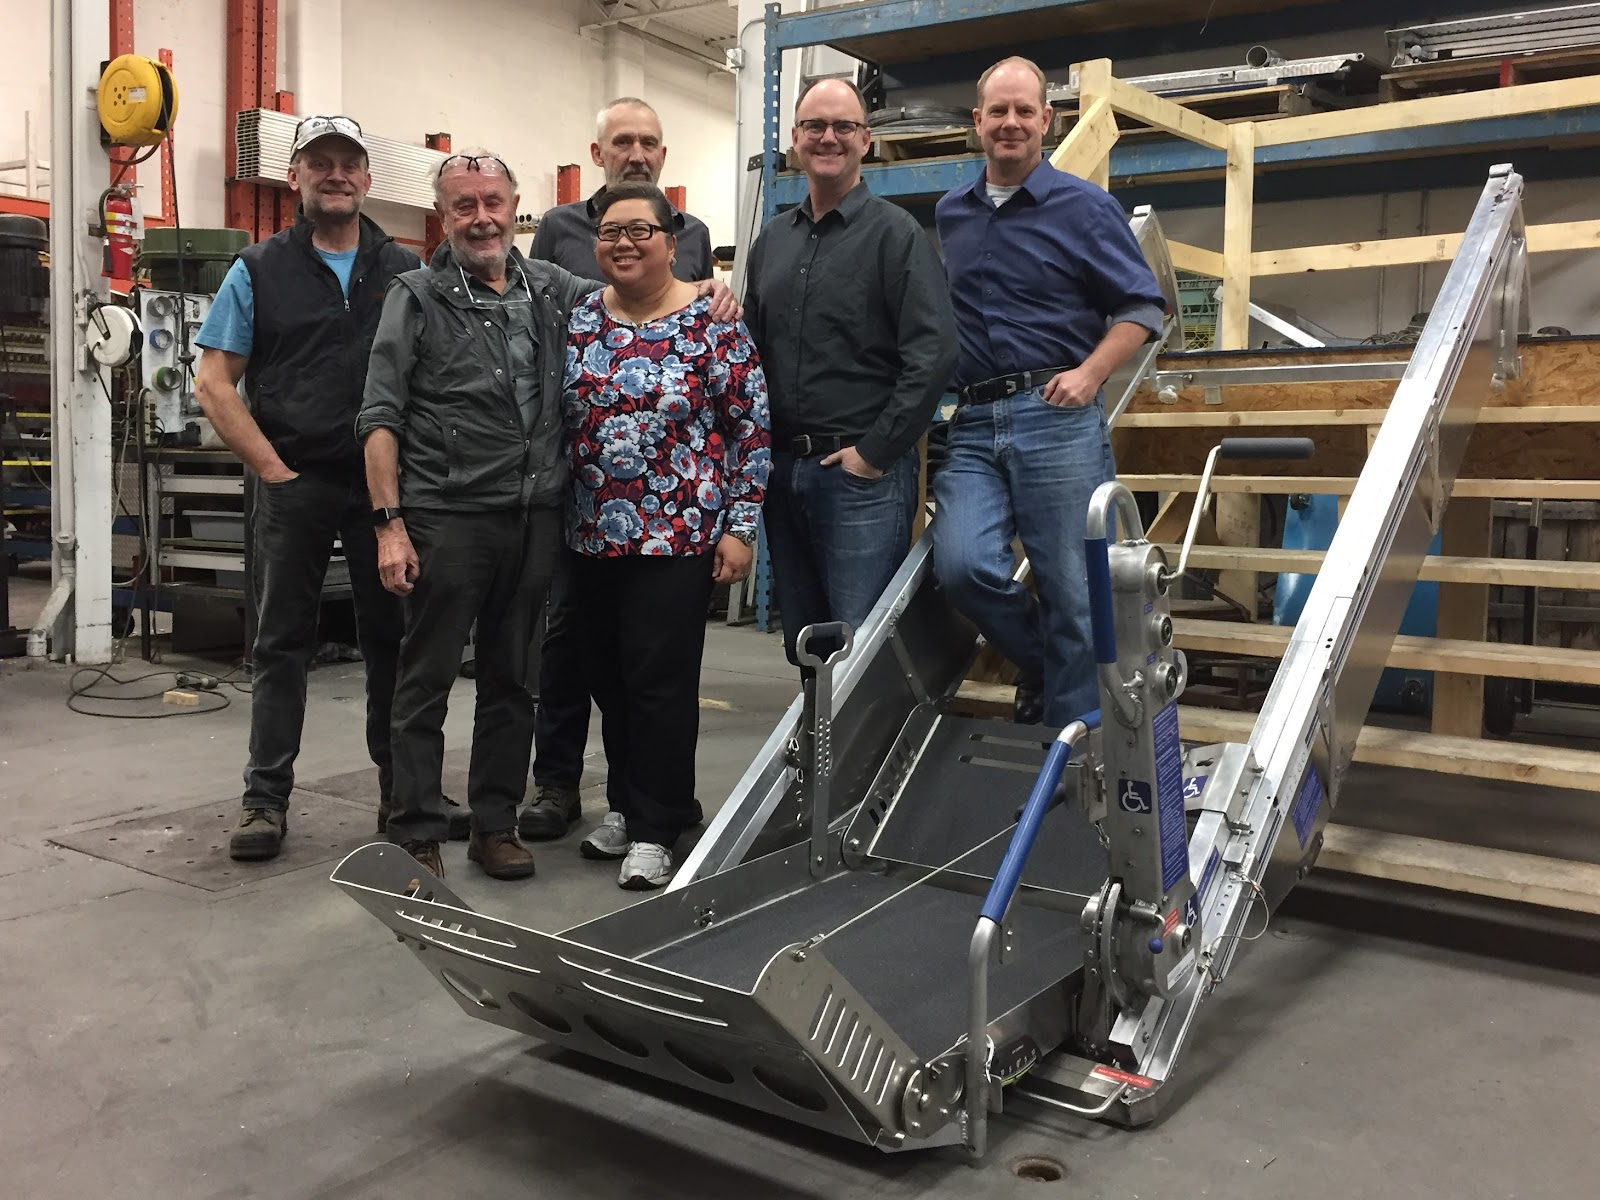 For their market research, the Adaptive Concepts team interviewed 130 wheelchair users and caregivers to determine the need for an ultraportable, easy-to-assemble mechanical lift.